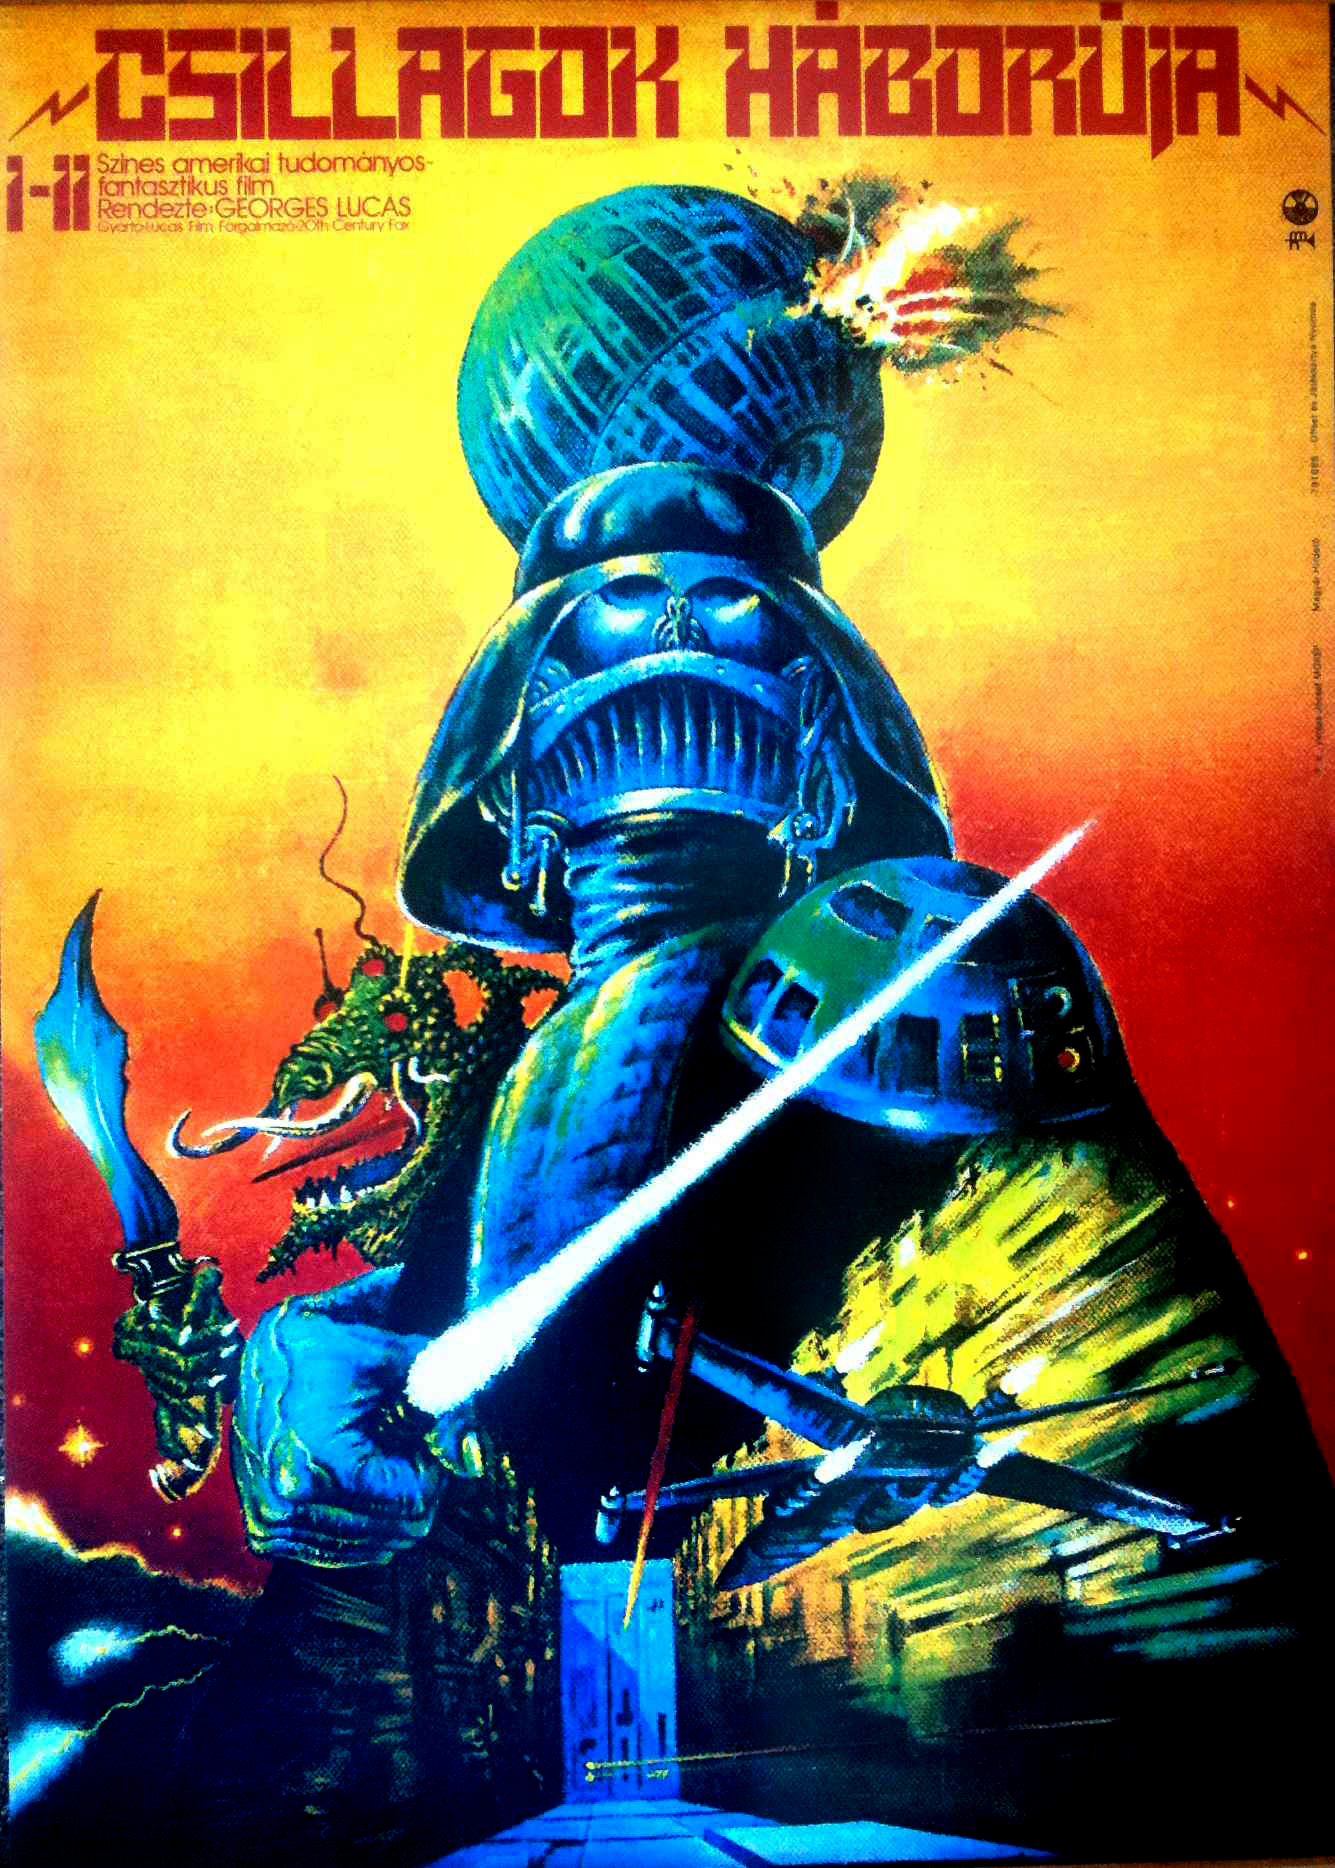 Star Wars Poster Hungarian Star Wars Posters Iso50 Blog The Blog Of